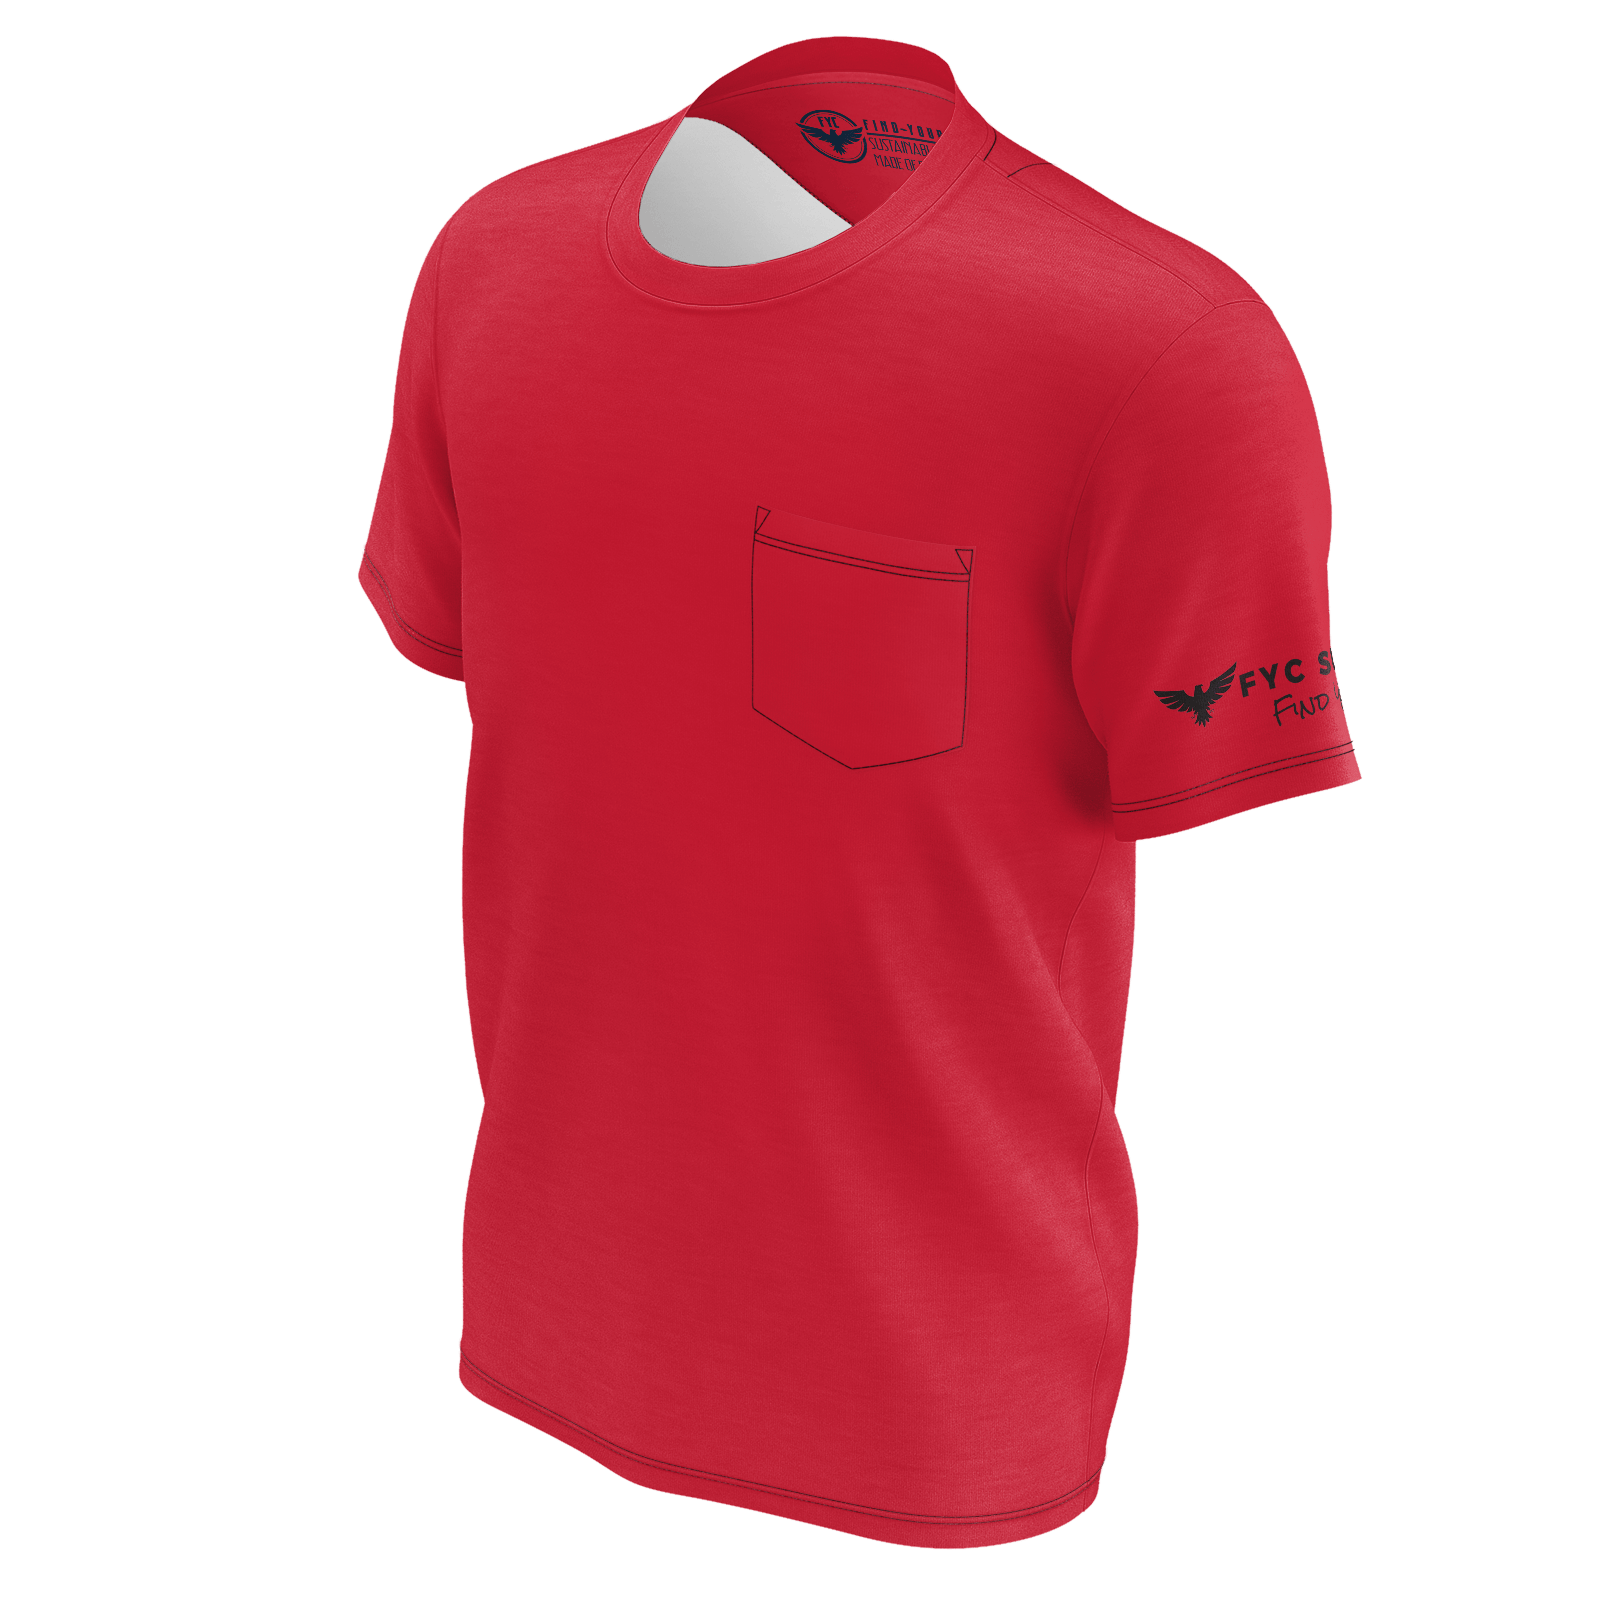 Men's Burnt Red Sustainable Charter Pocket Tee Shirt